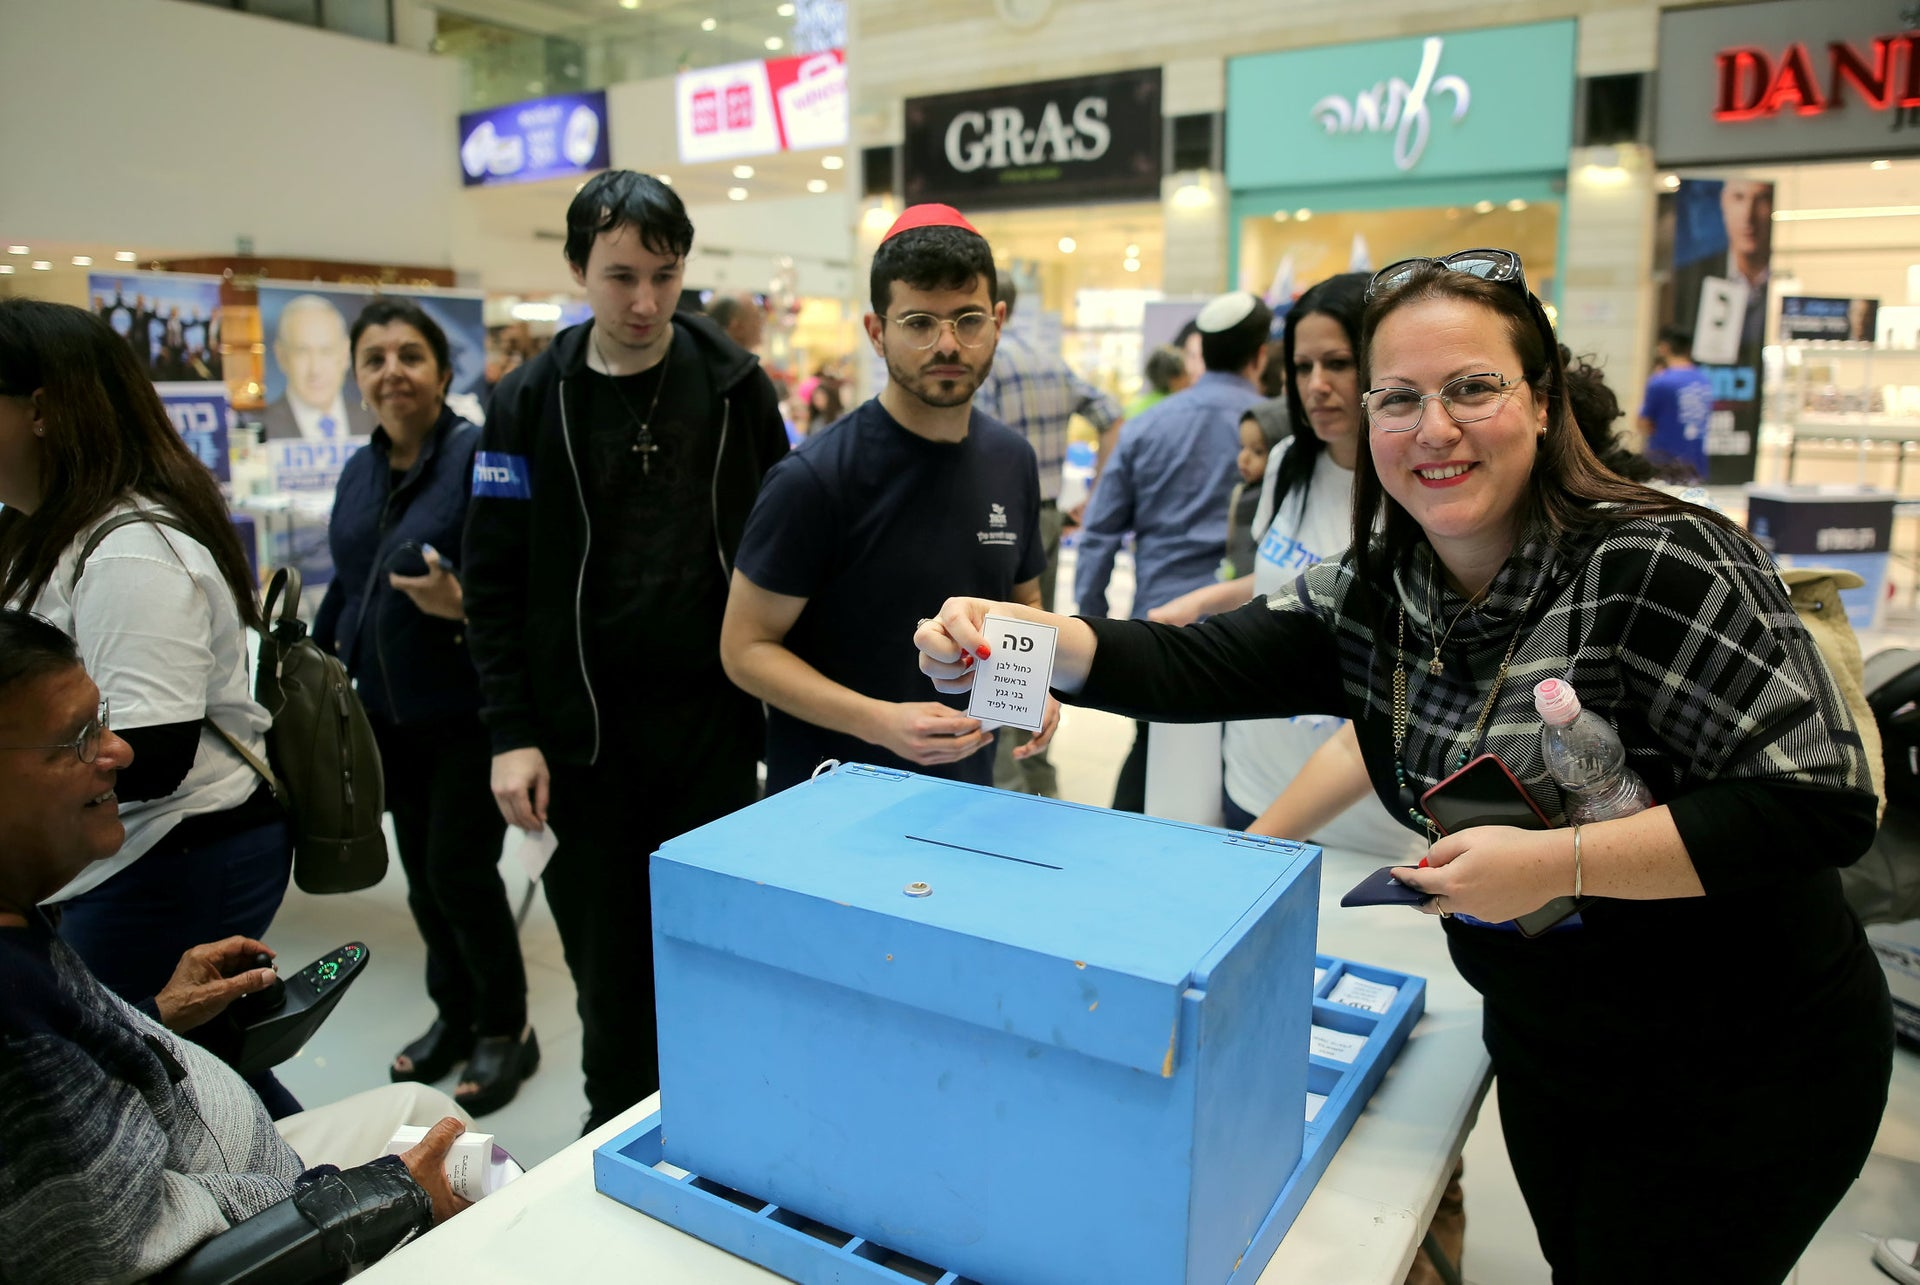 A voter casting her ballot for Kahol Lavan into a fake election box in a Rehovot mall, April 4, 2019.